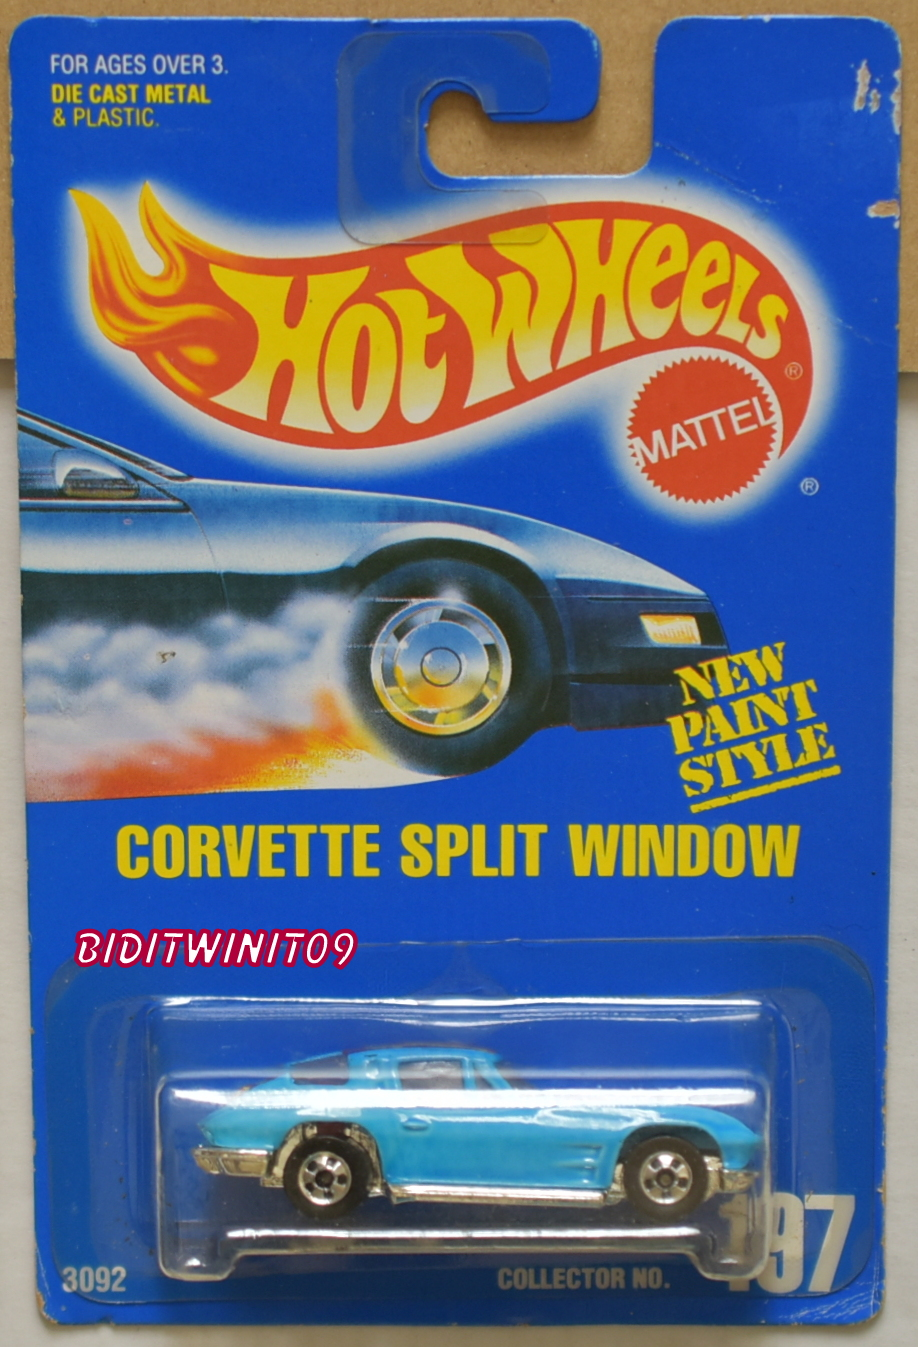 HOT WHEELS 1991 BLUE CARD CORVETTE SPLIT WINDOW #197 BASIC WHEELS LIGHT BLUE E+